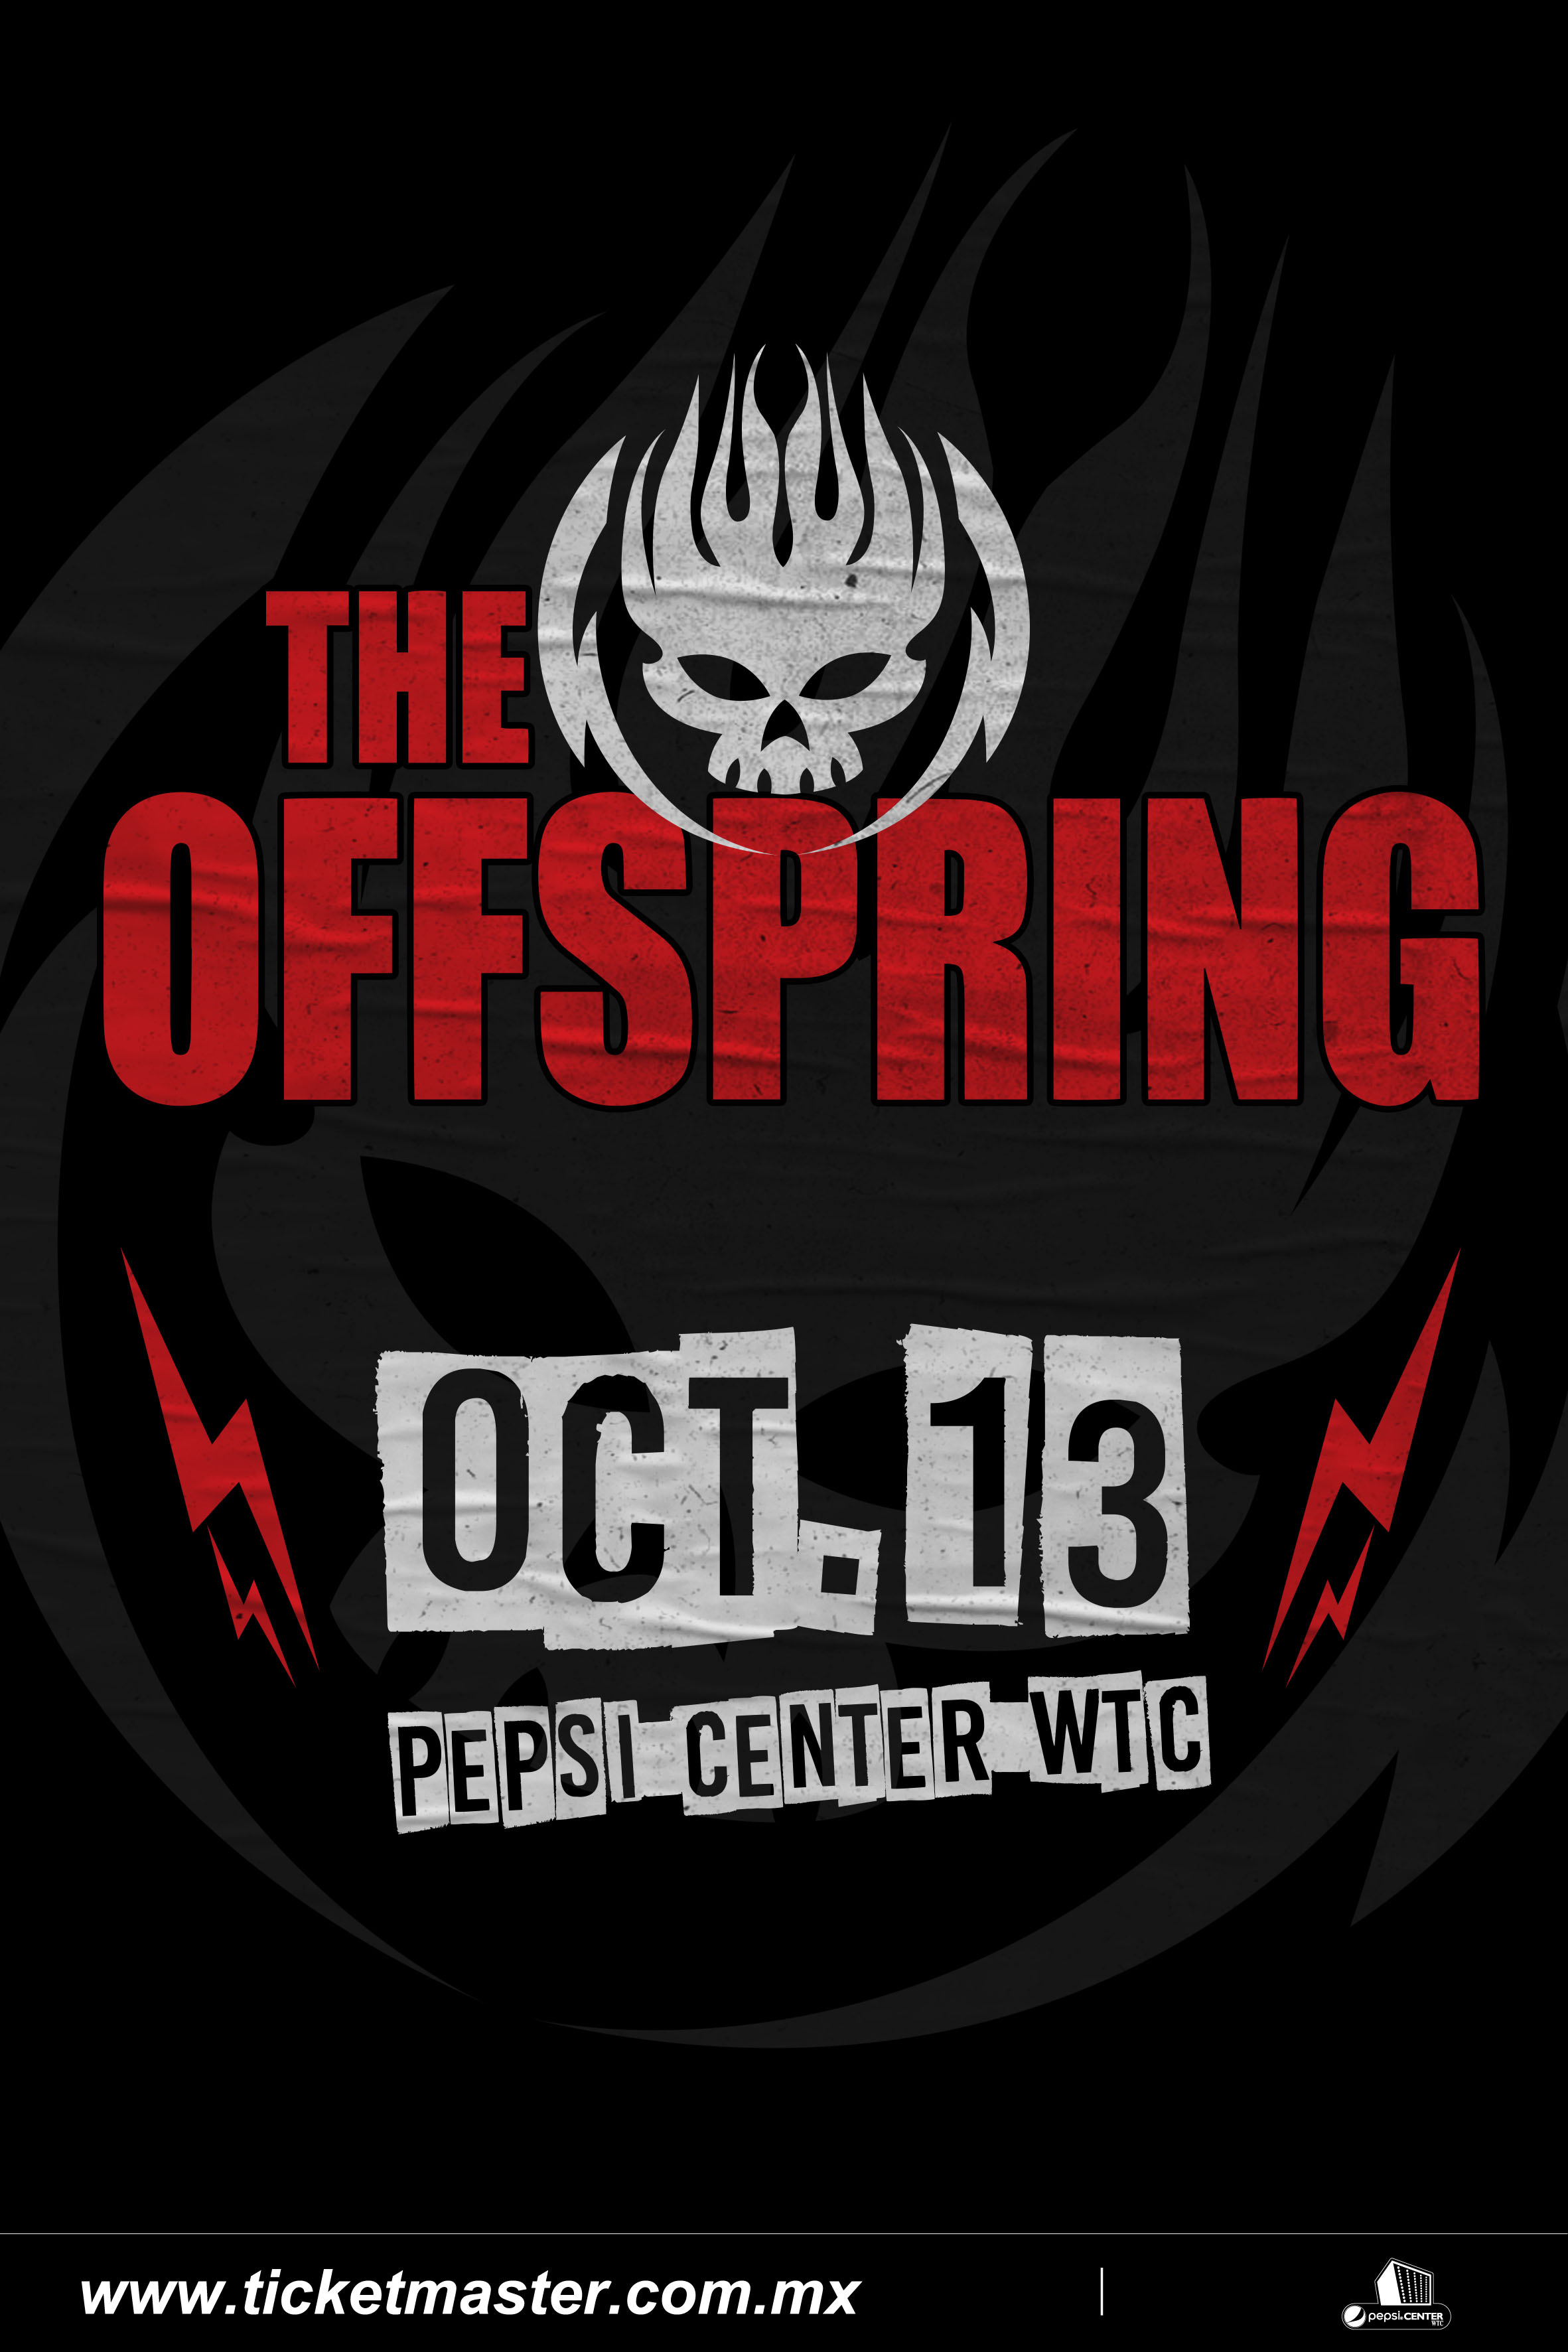 The Offspring regresa a México